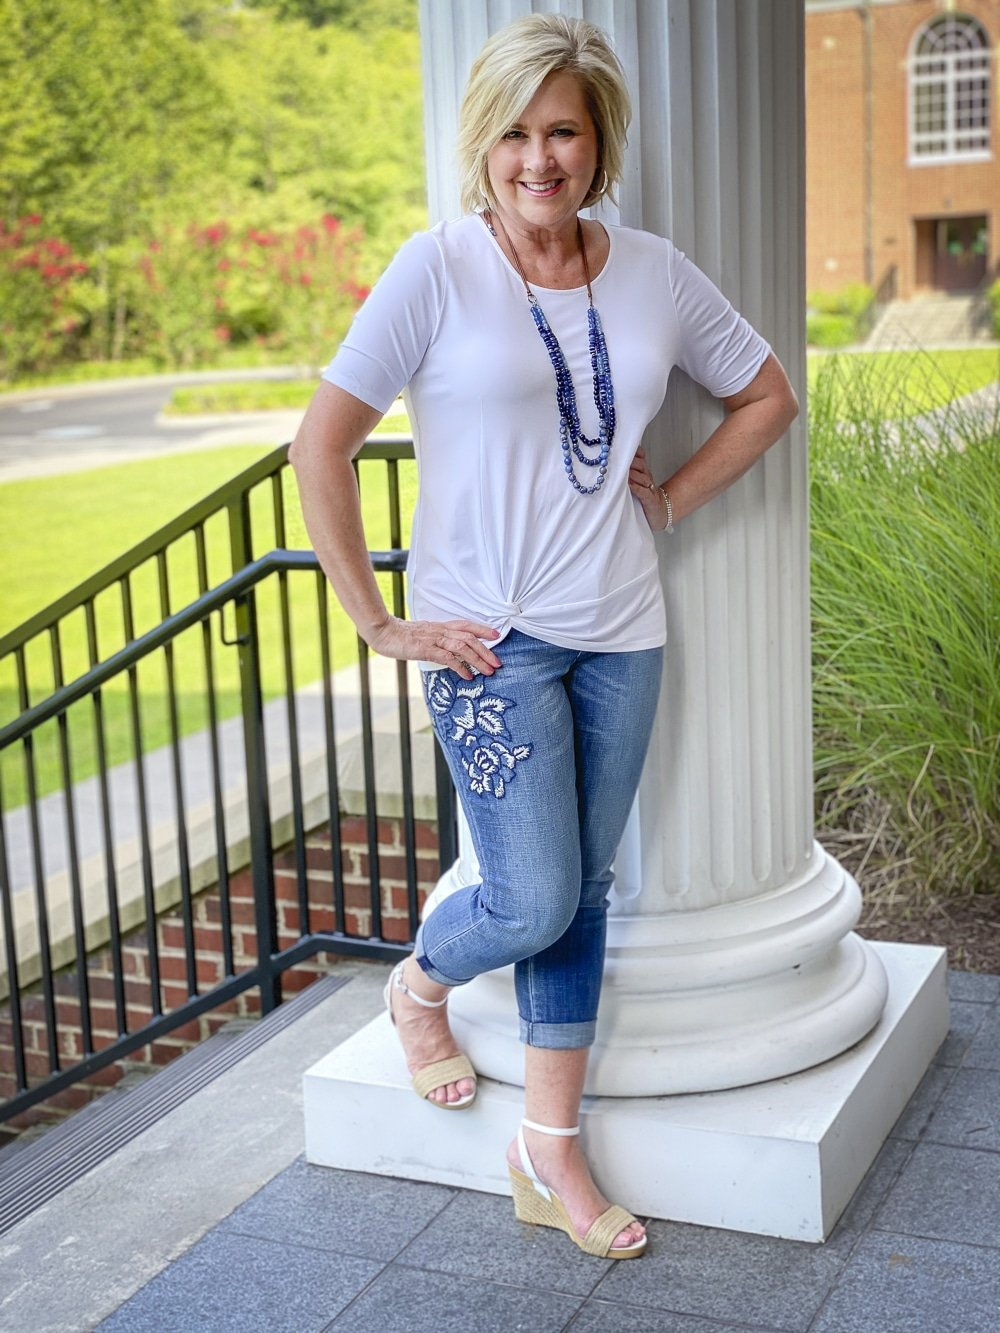 Fashion Blogger 50 Is Not Old is wearing a white twist top, embroidered jeans, and blue beaded jewelry